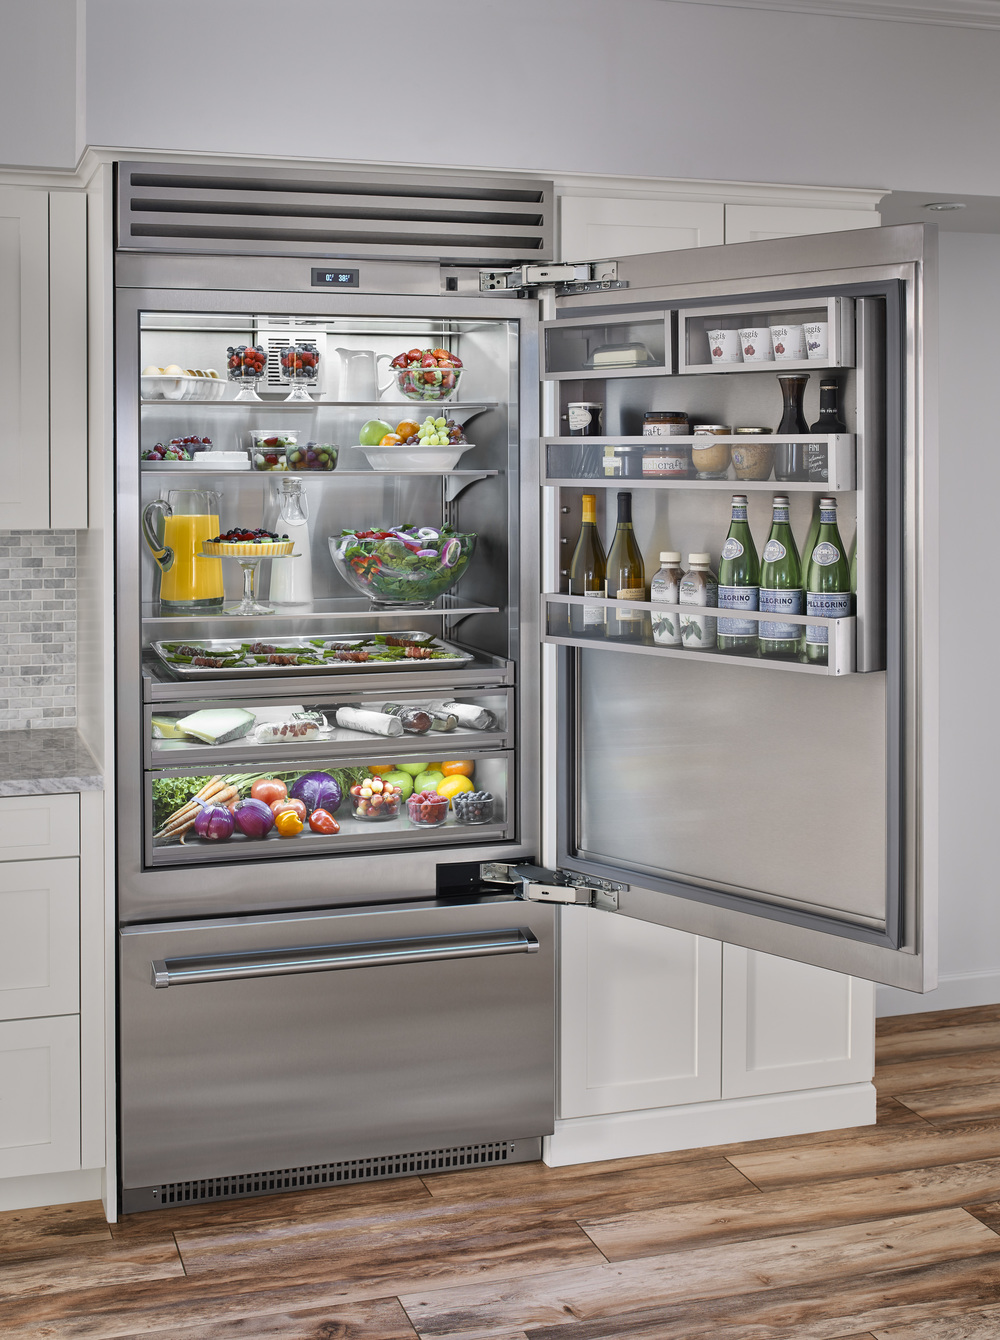 Fridge-Interior_Full-Angle.jpg